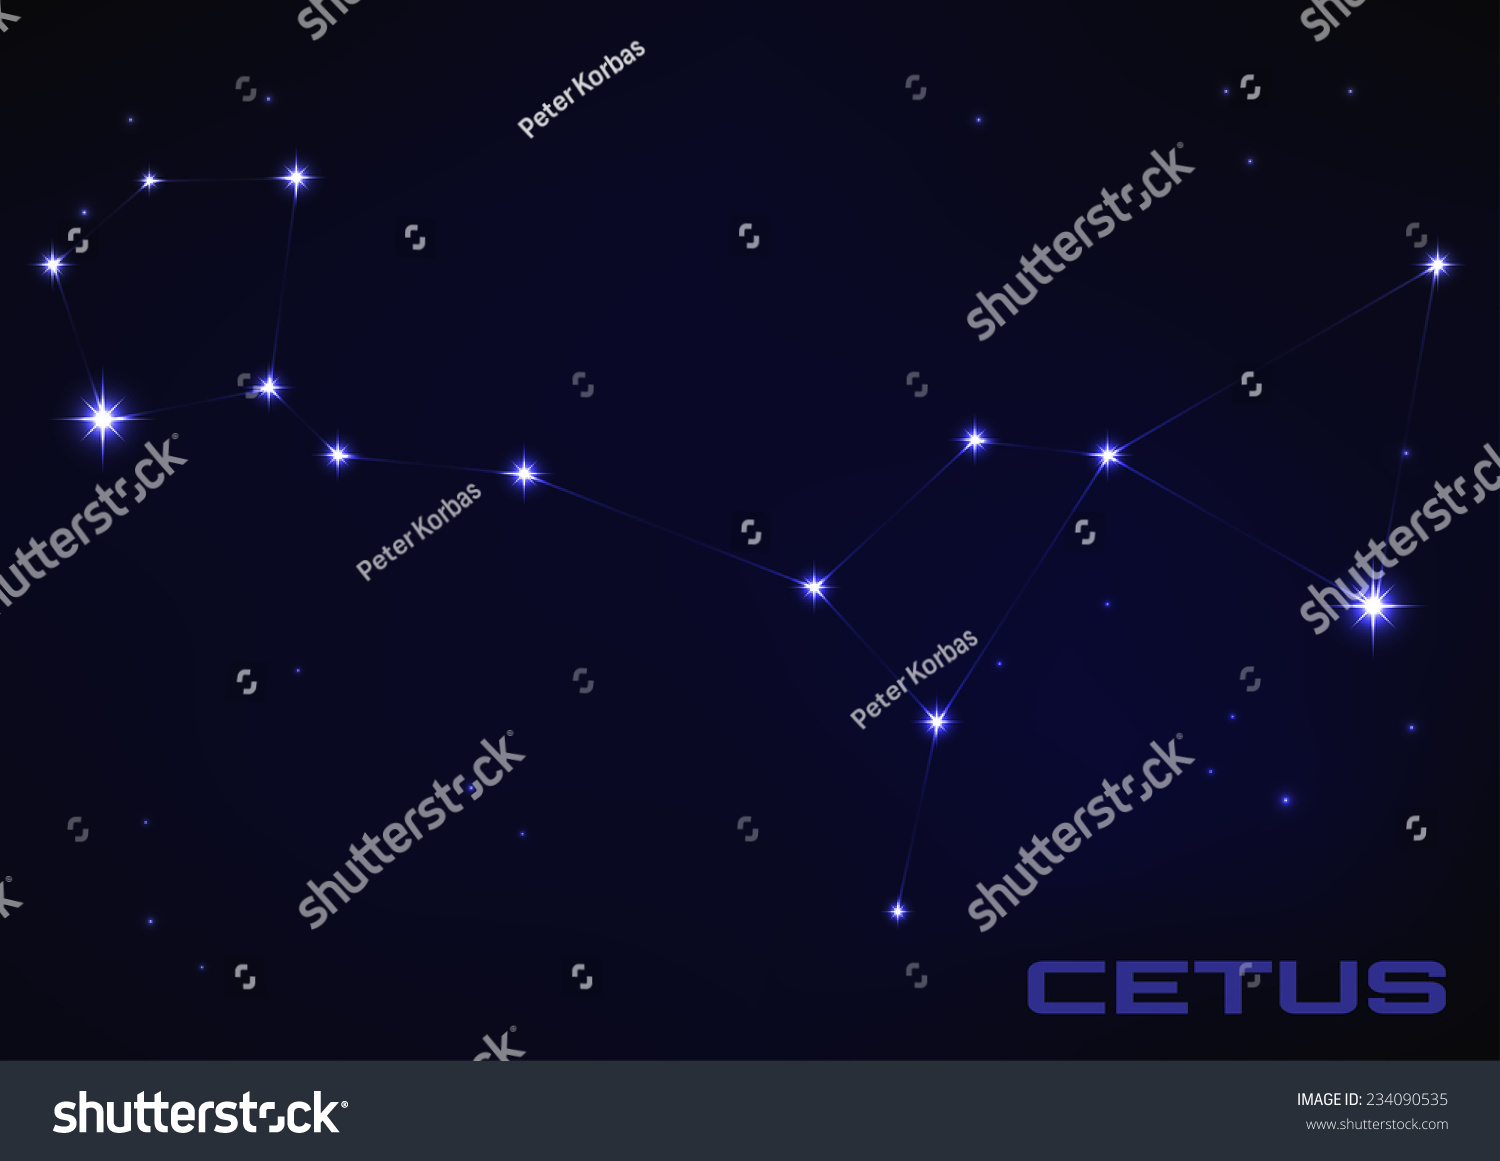 Cetus Constellation